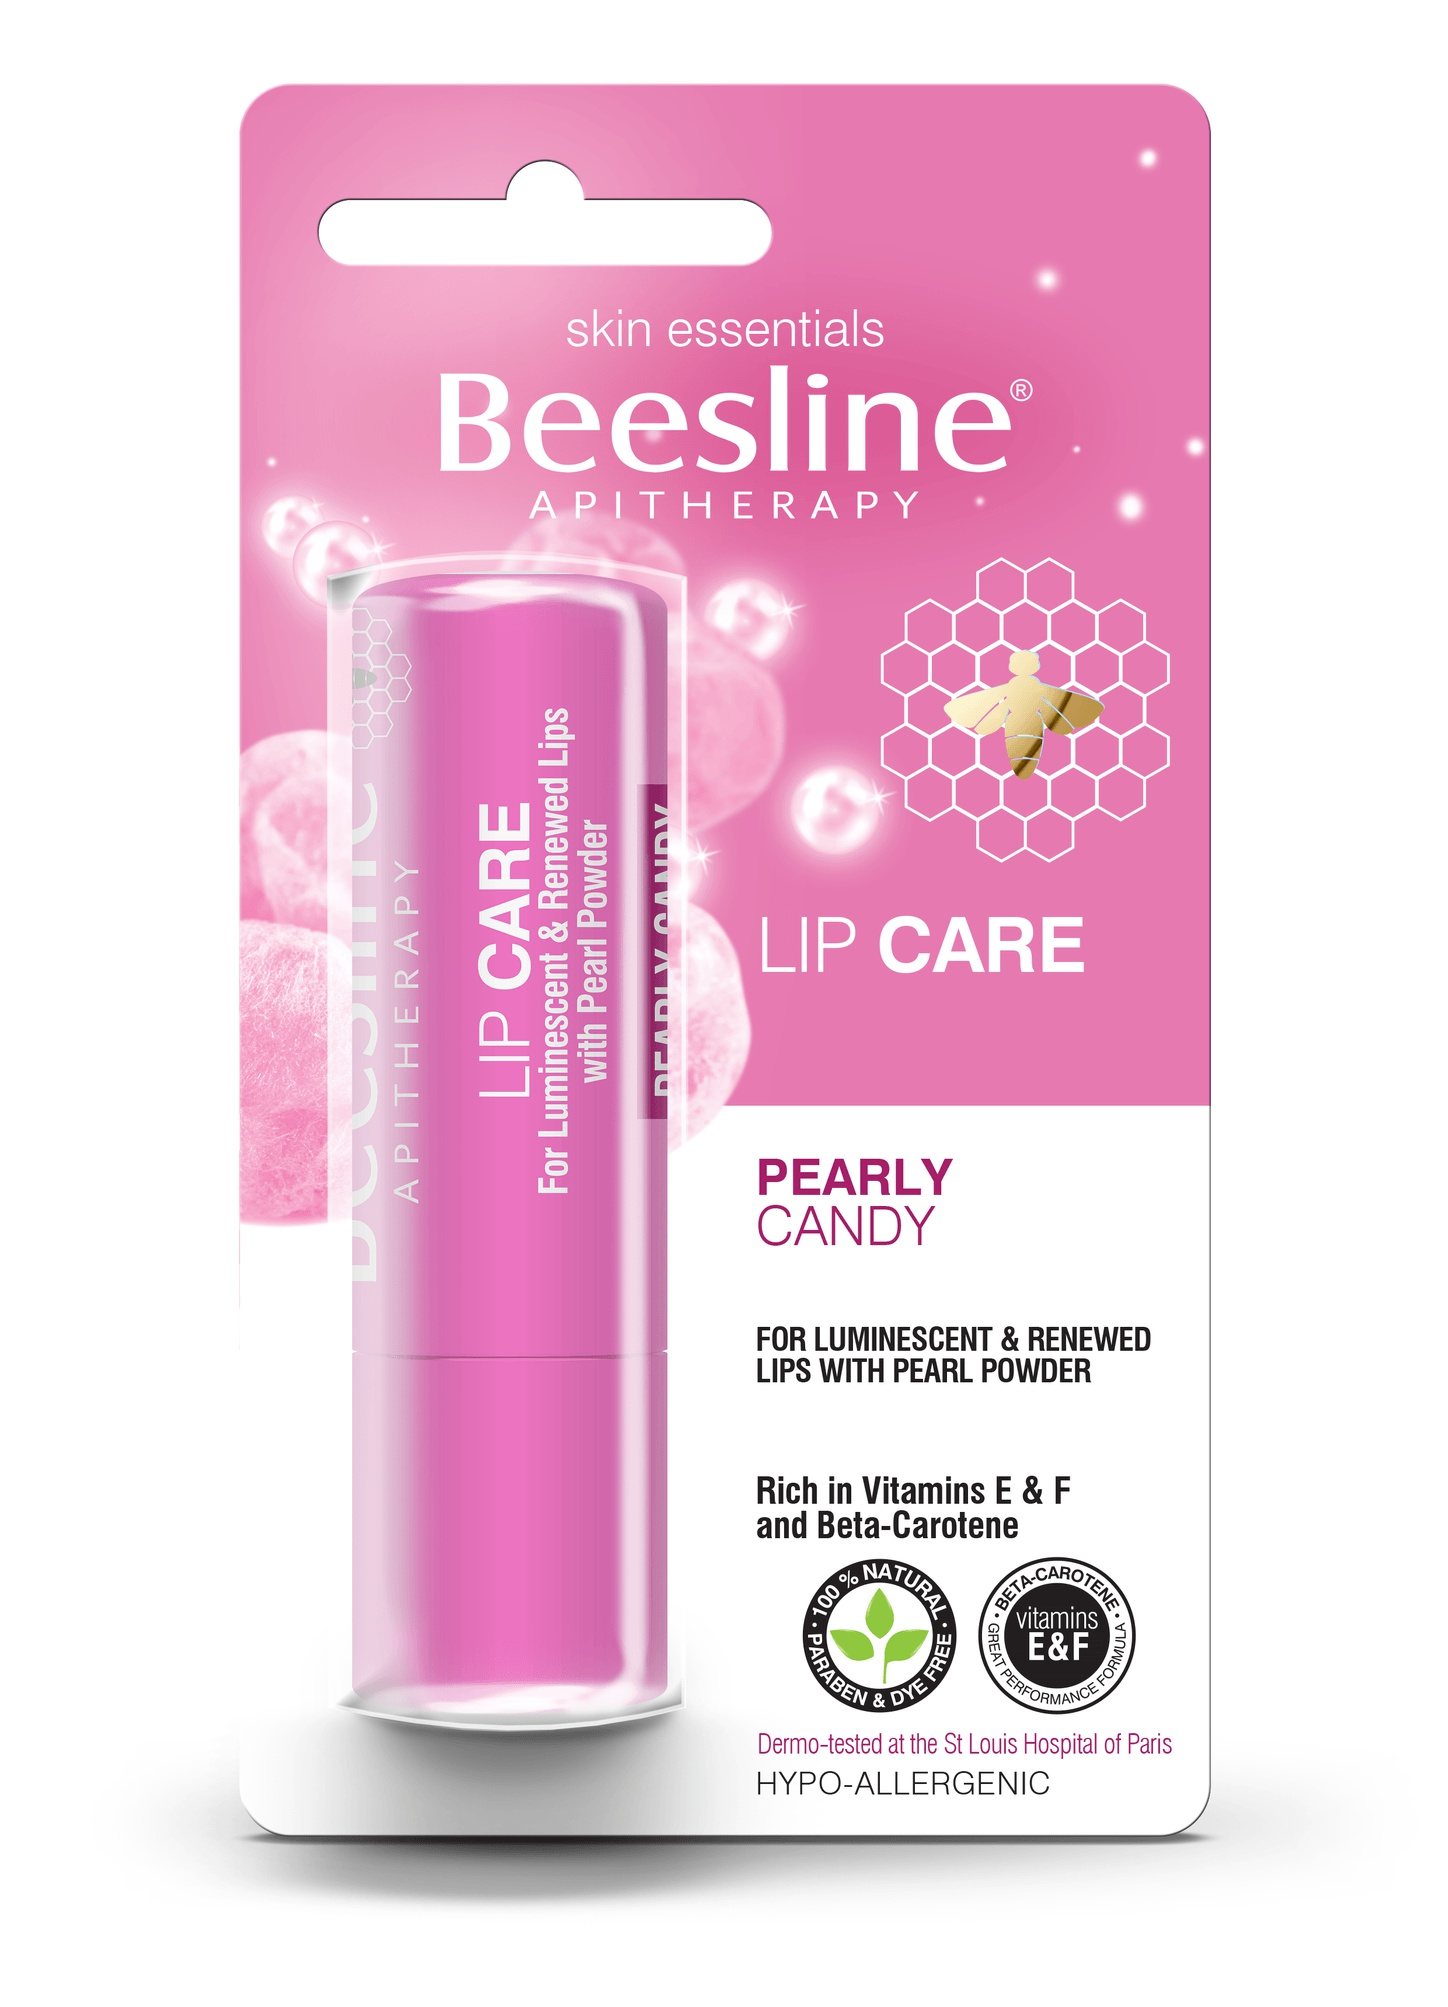 Beesline Apitherapy Lip Care Pearly Candy SPF 10